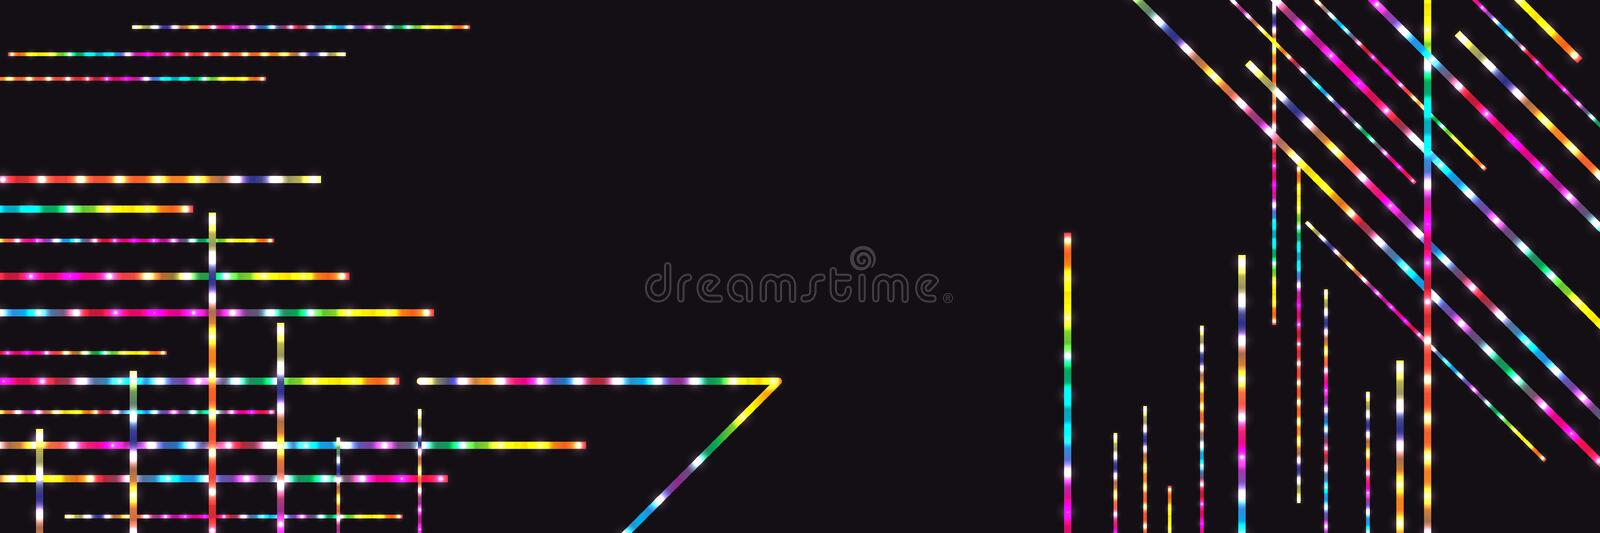 Colorful line bright banner RGB royalty free illustration